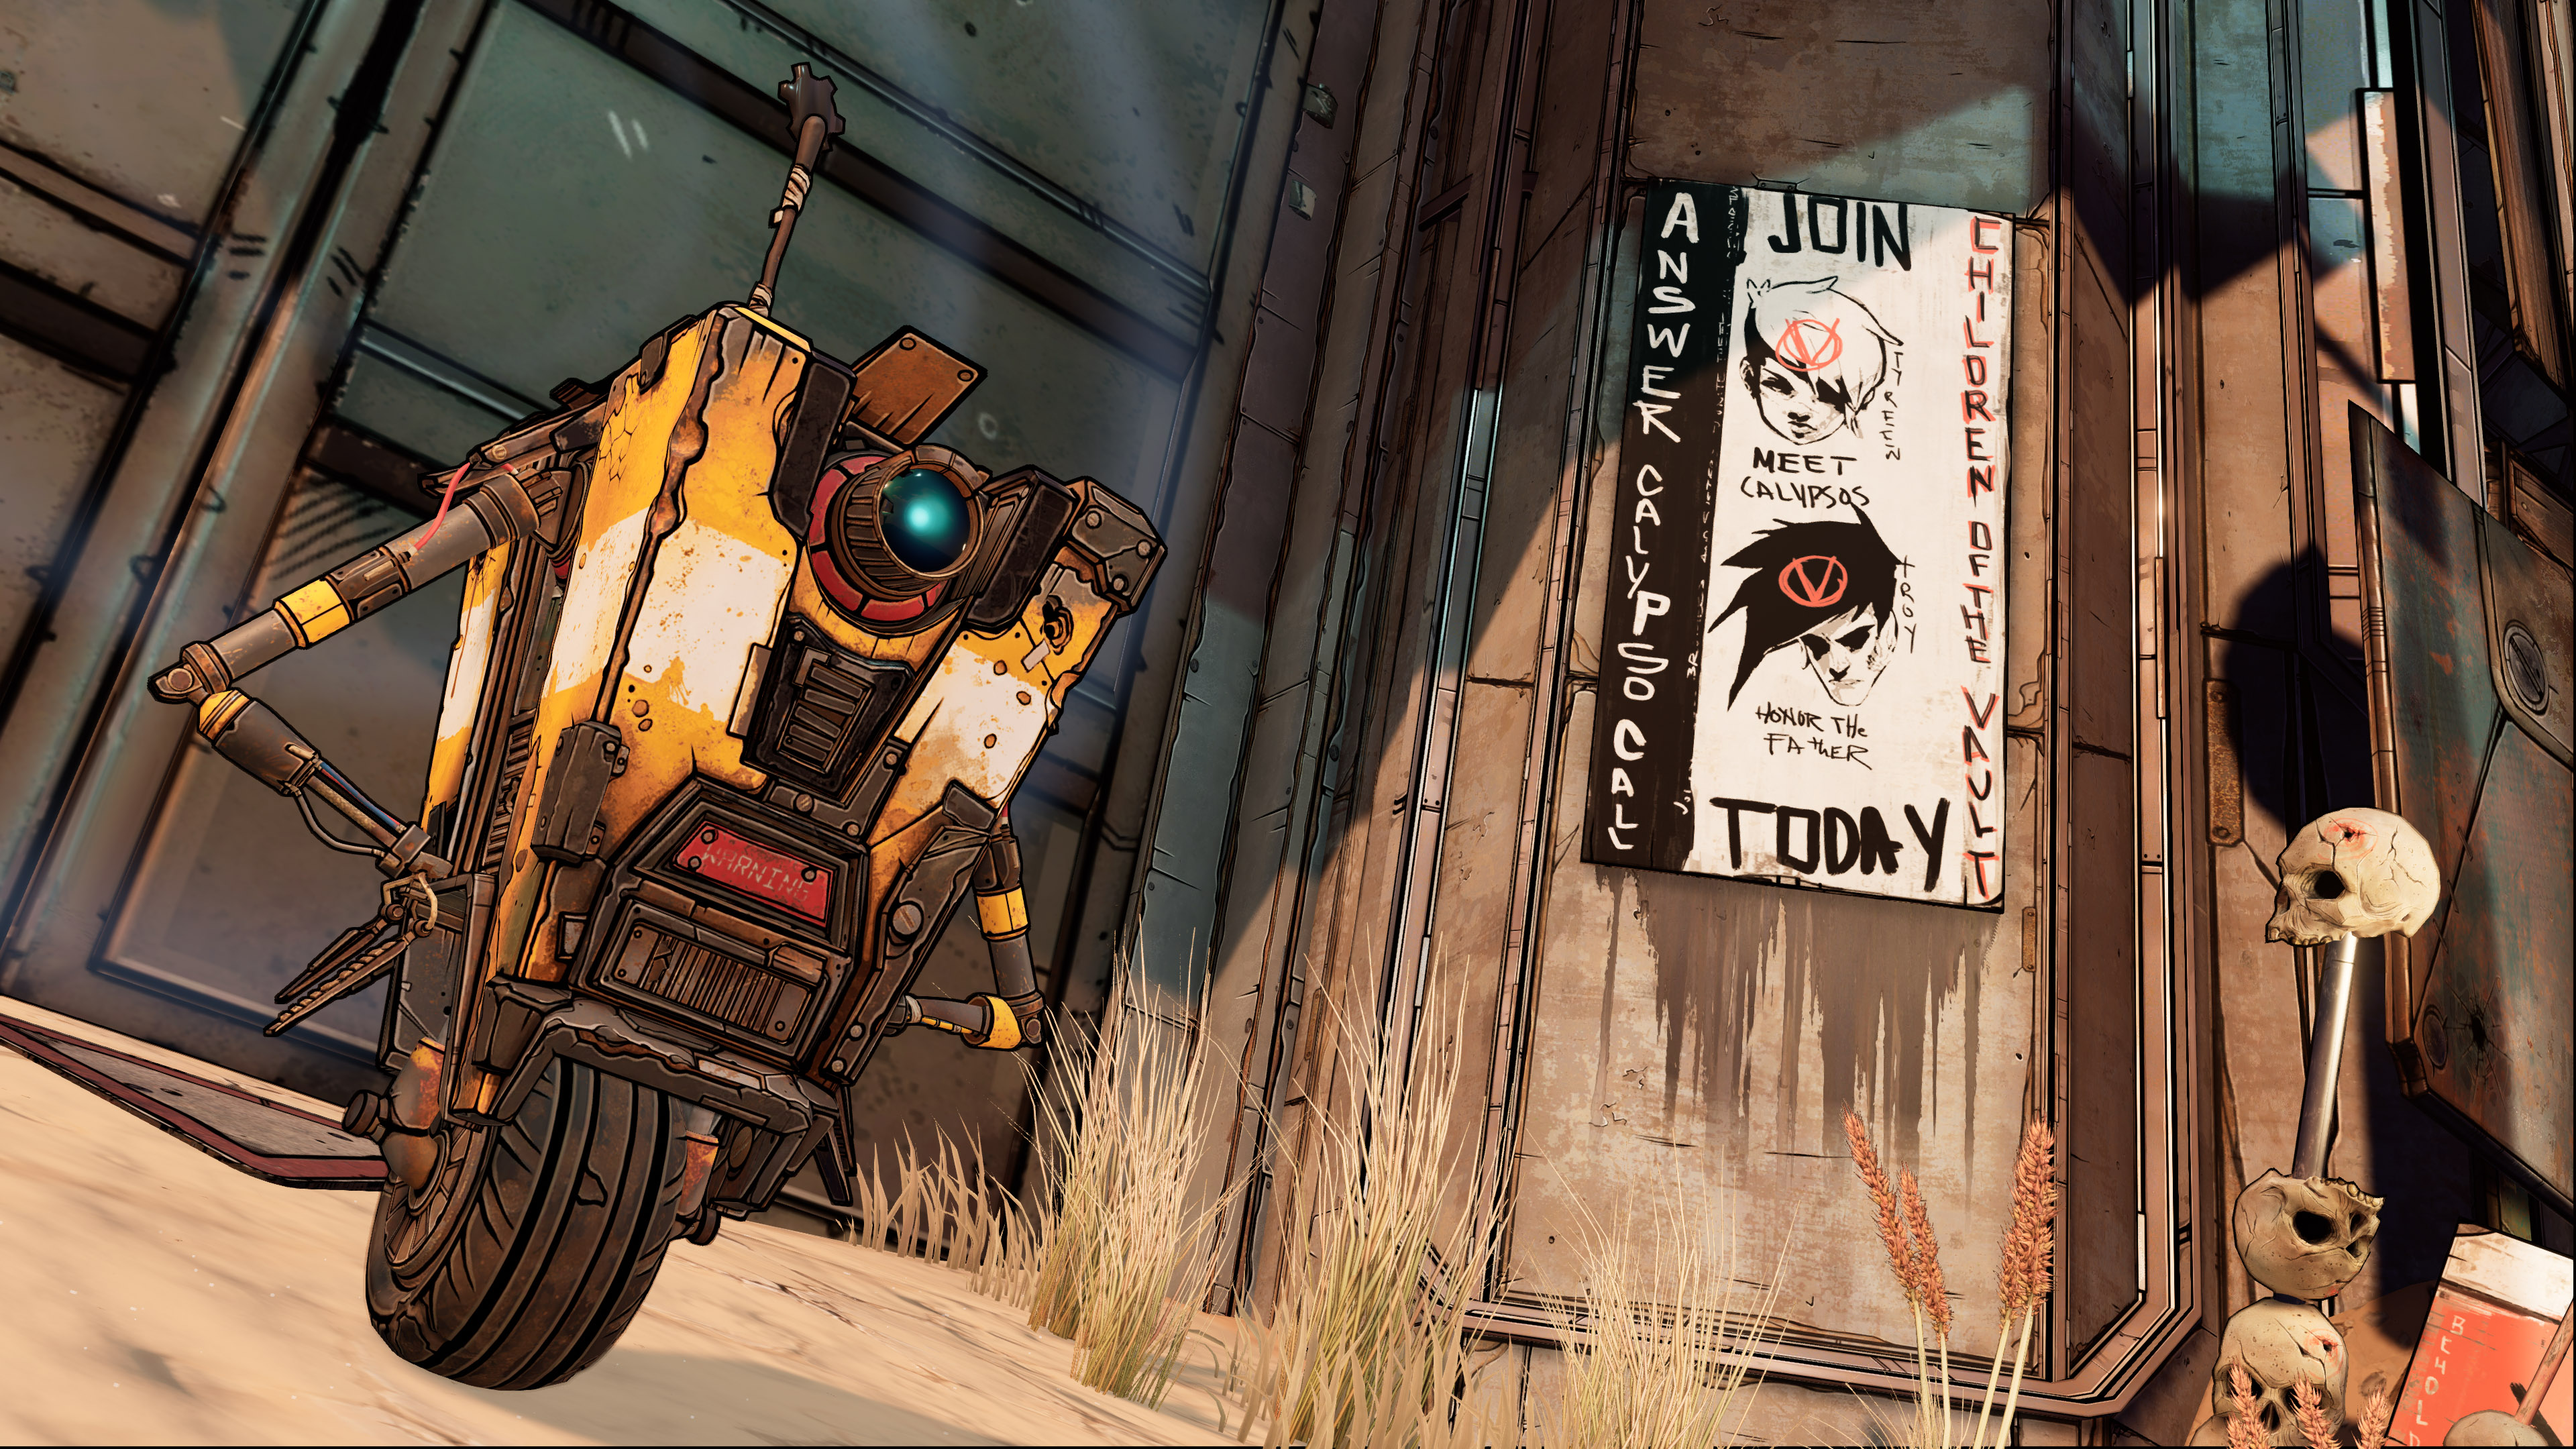 Borderlands 3 Ultimate Edition (Steam) | ROW (dbde0796-71f8-46c4-a553-7295ee4ff455)